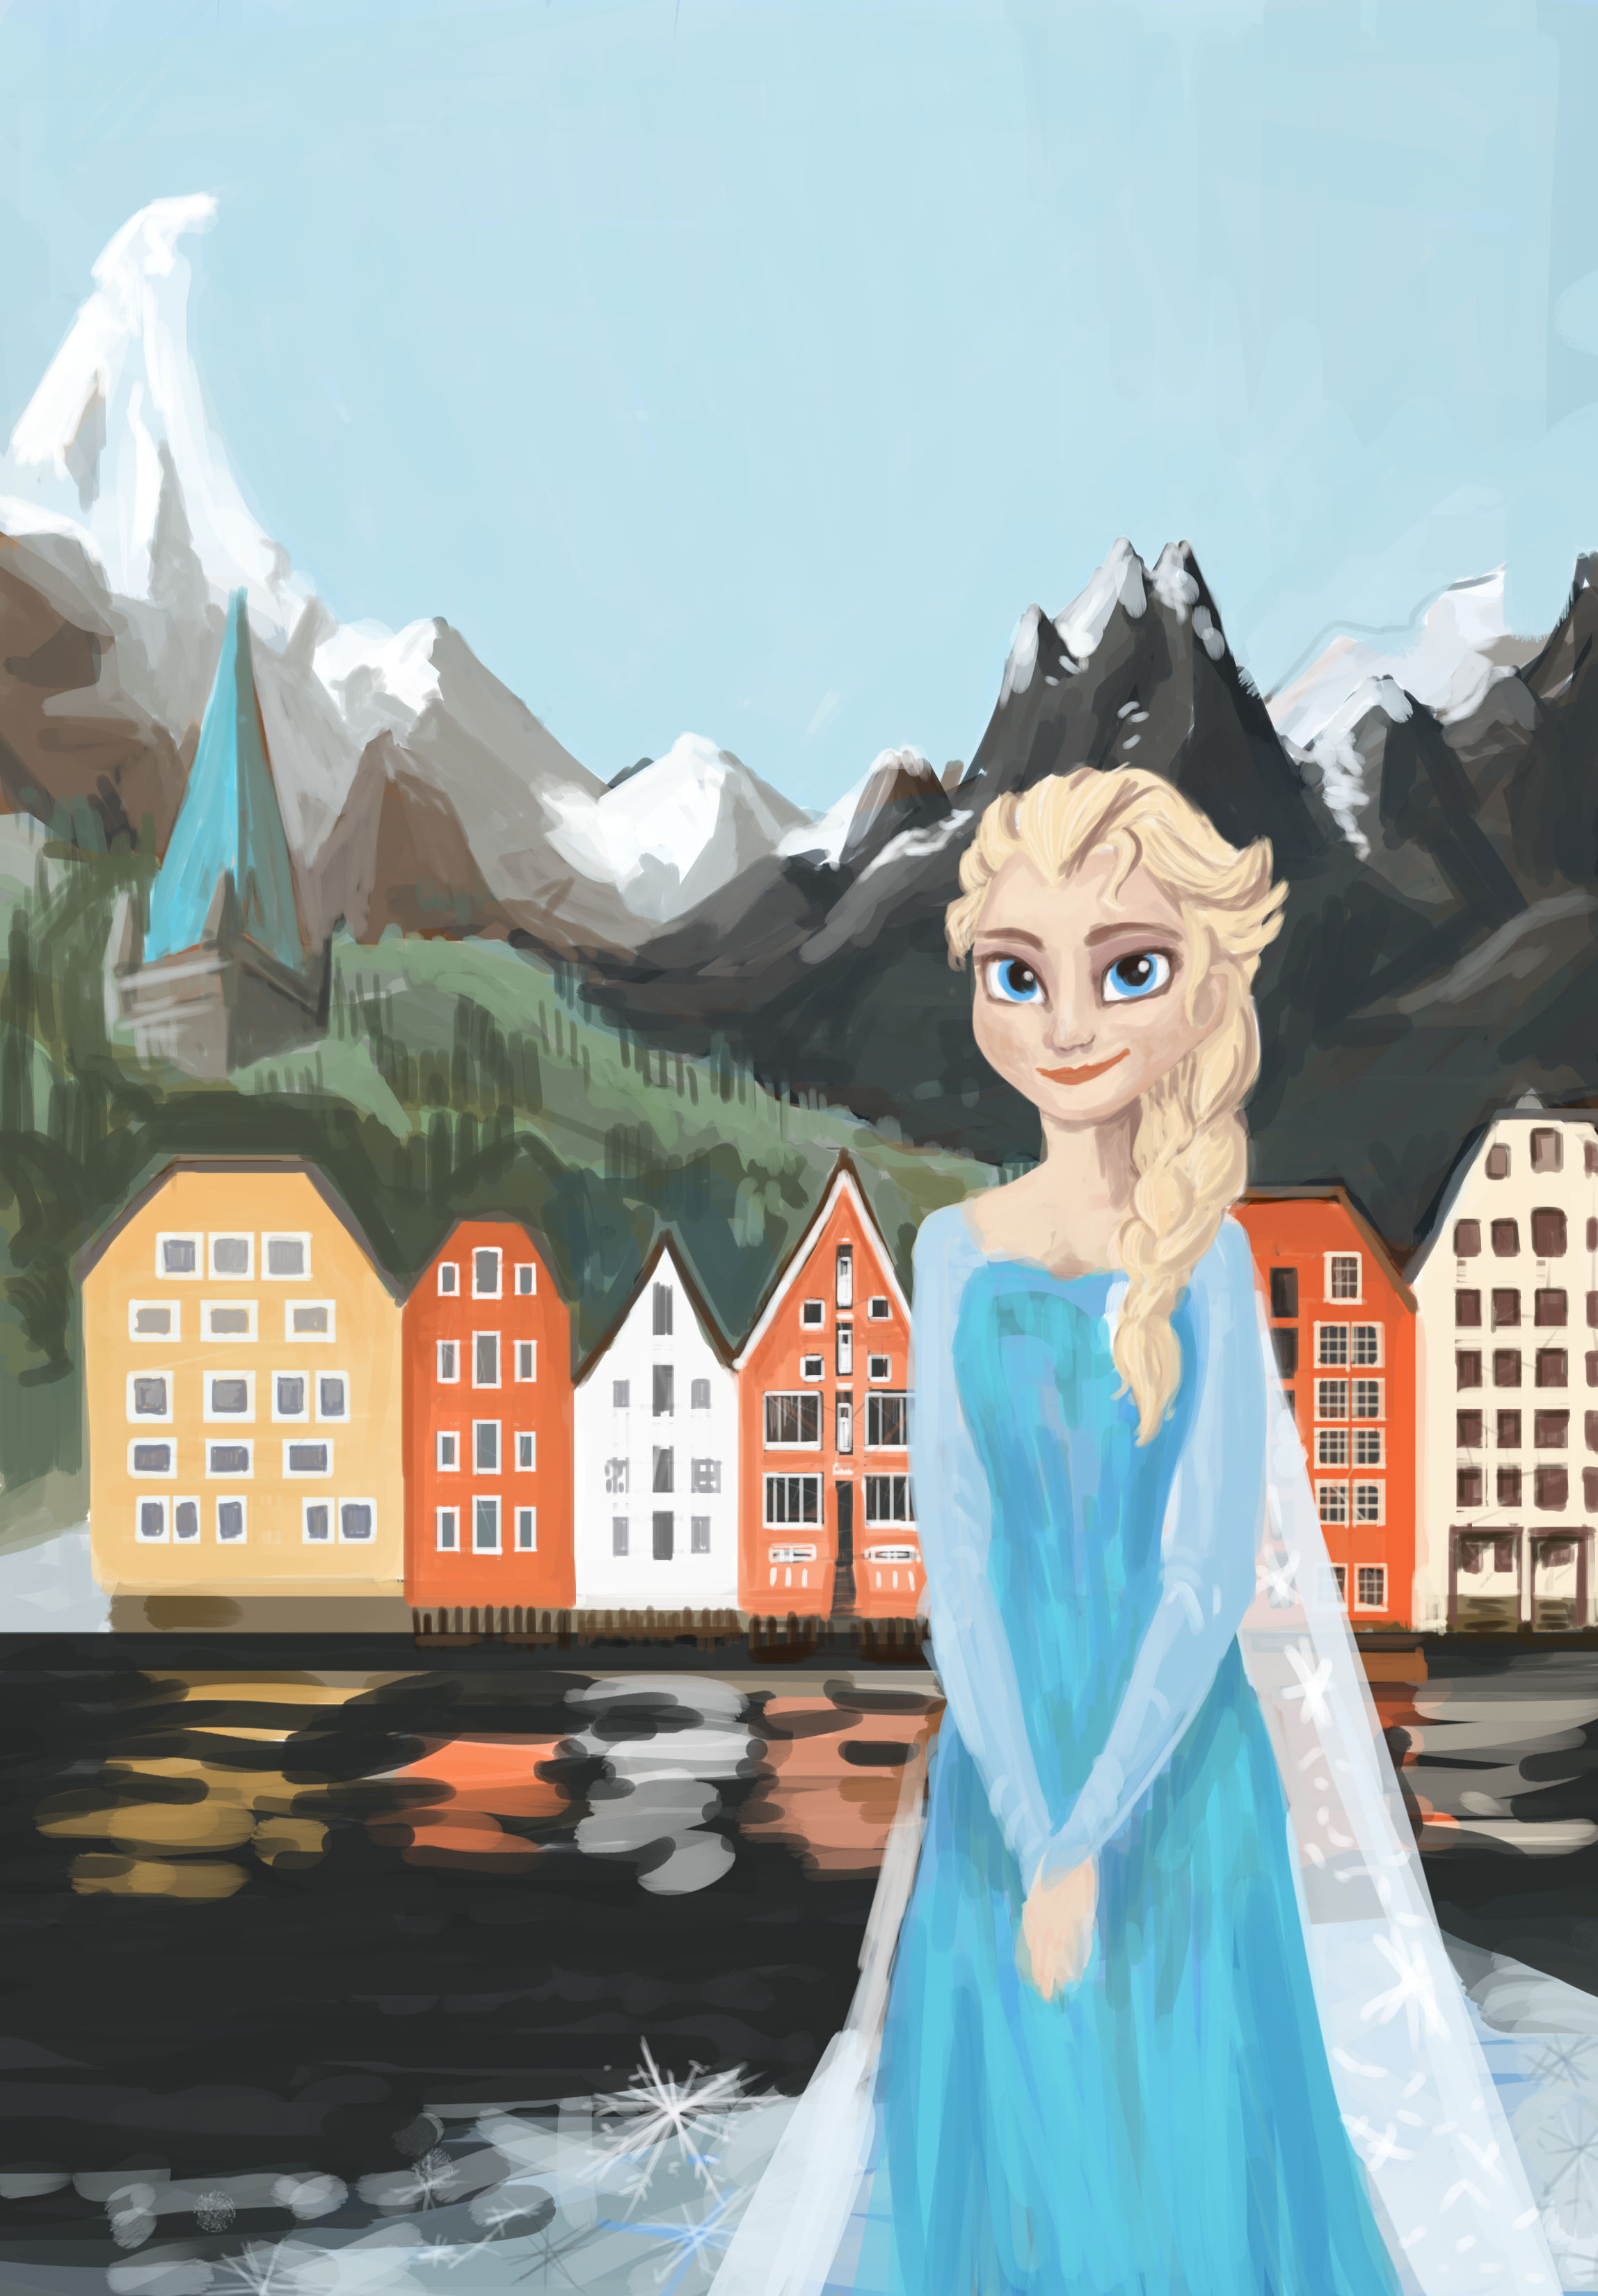 We believed that this concept could easily be adapted to other cities and special events. This is the Elsa version of theposter for Trondheim, Norway that we ended up switching to Olaf.